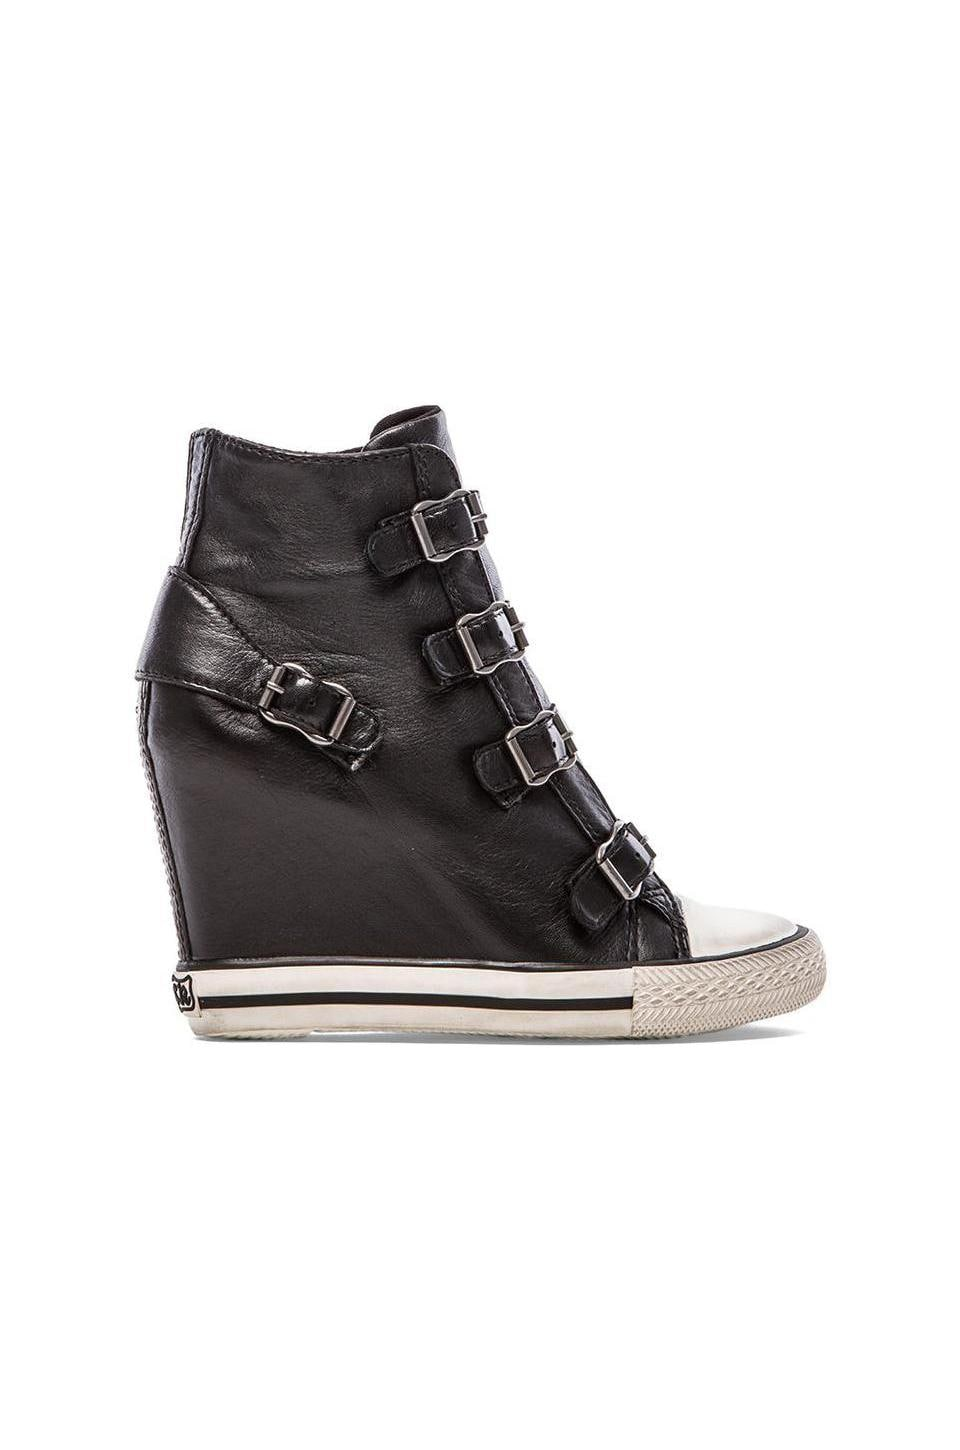 Ash United Sneaker Wedge in Black